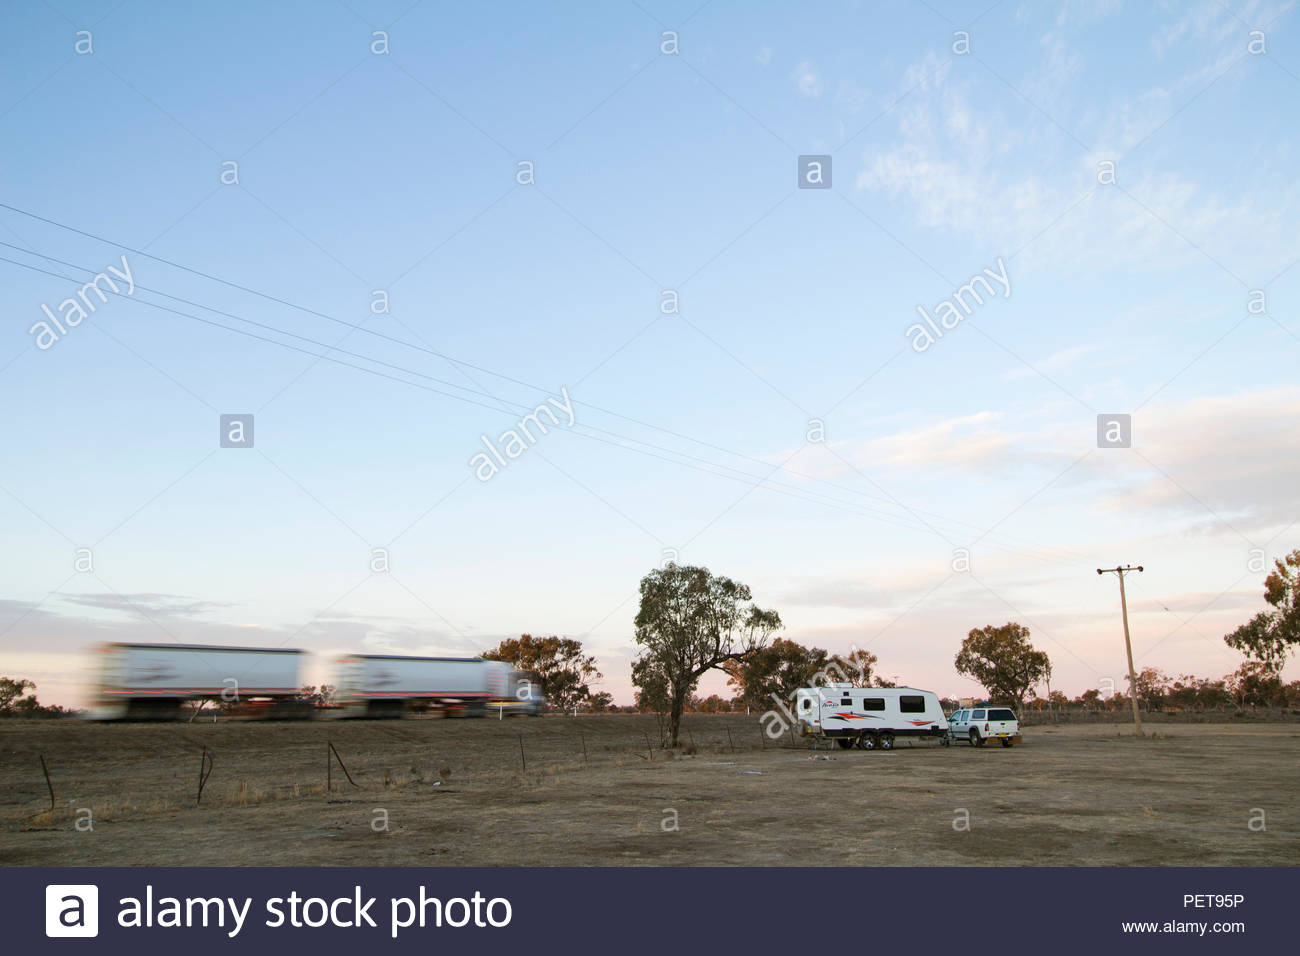 A heavy road truck drives past a camp site in the Australian outback. While free or low cost campgrounds are popular with caravaners they are often cl - Stock Image